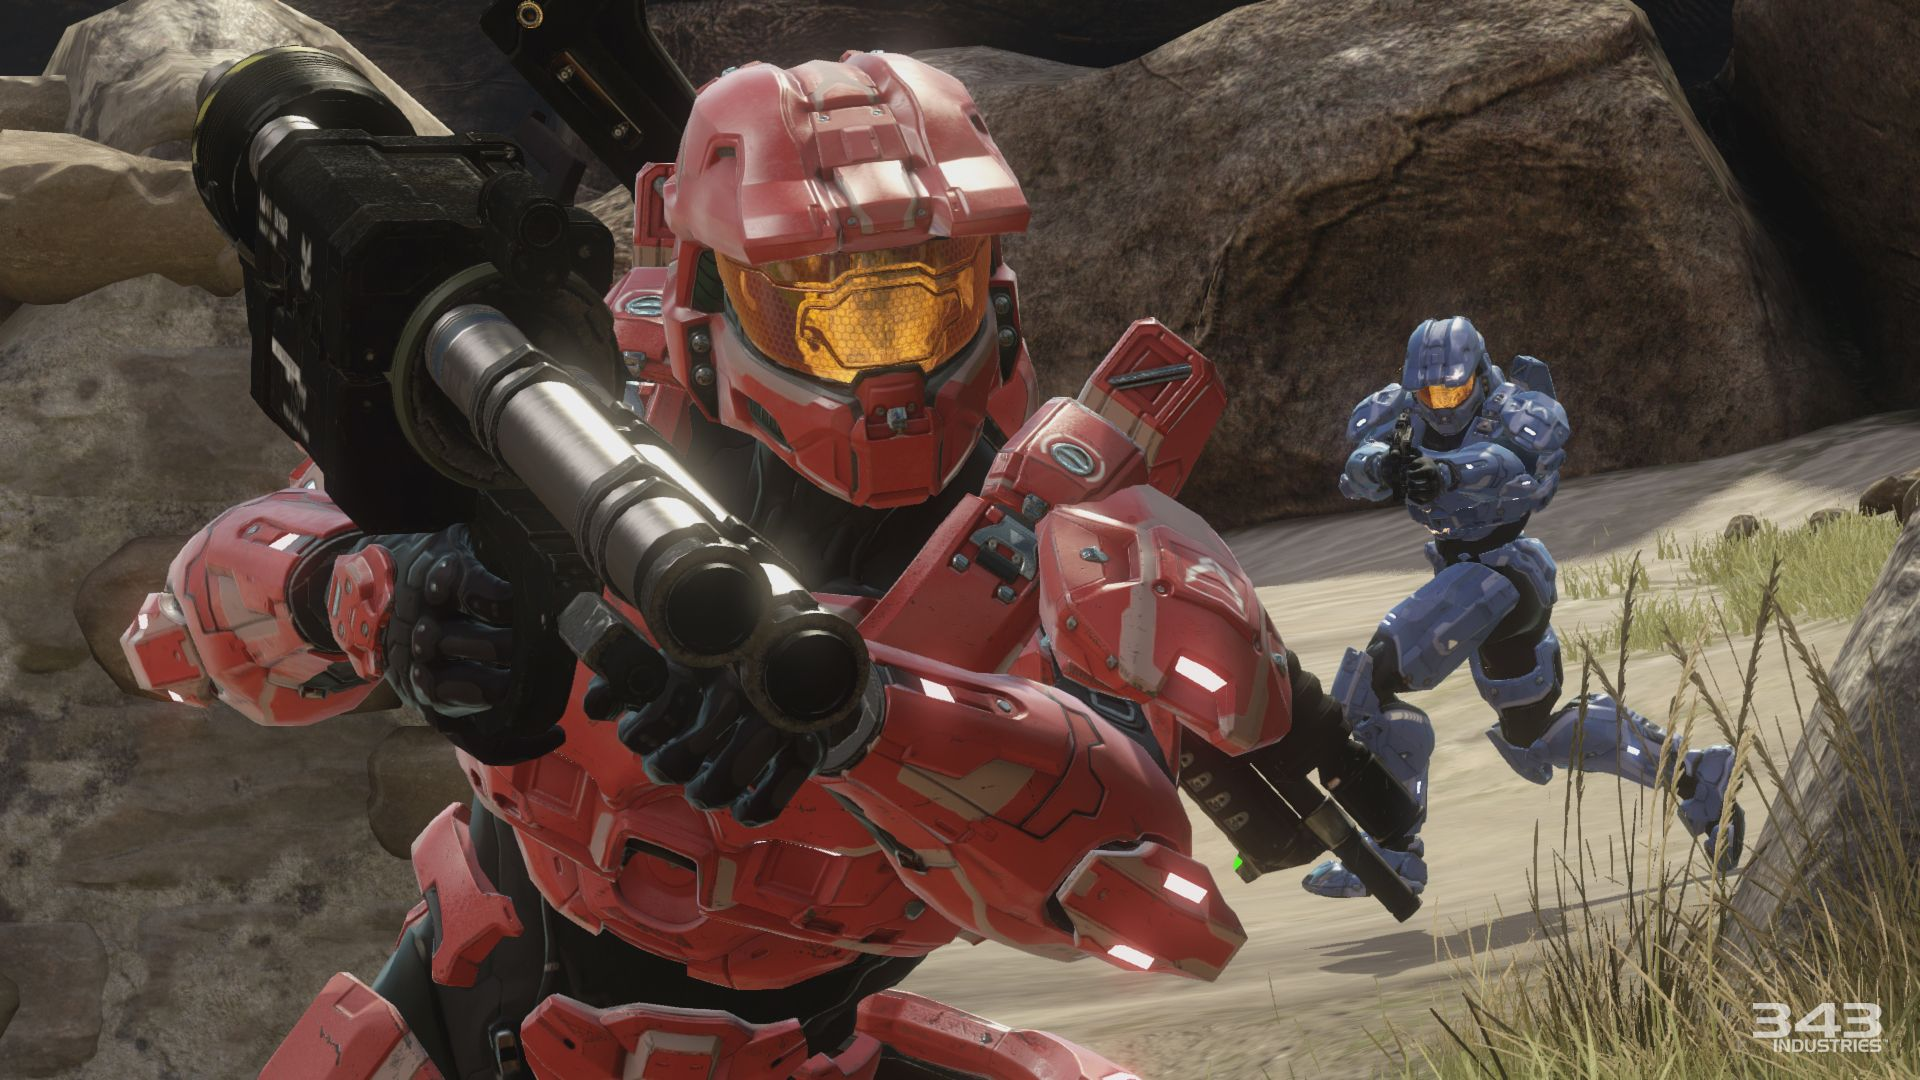 Halo 4 split screen matchmaking